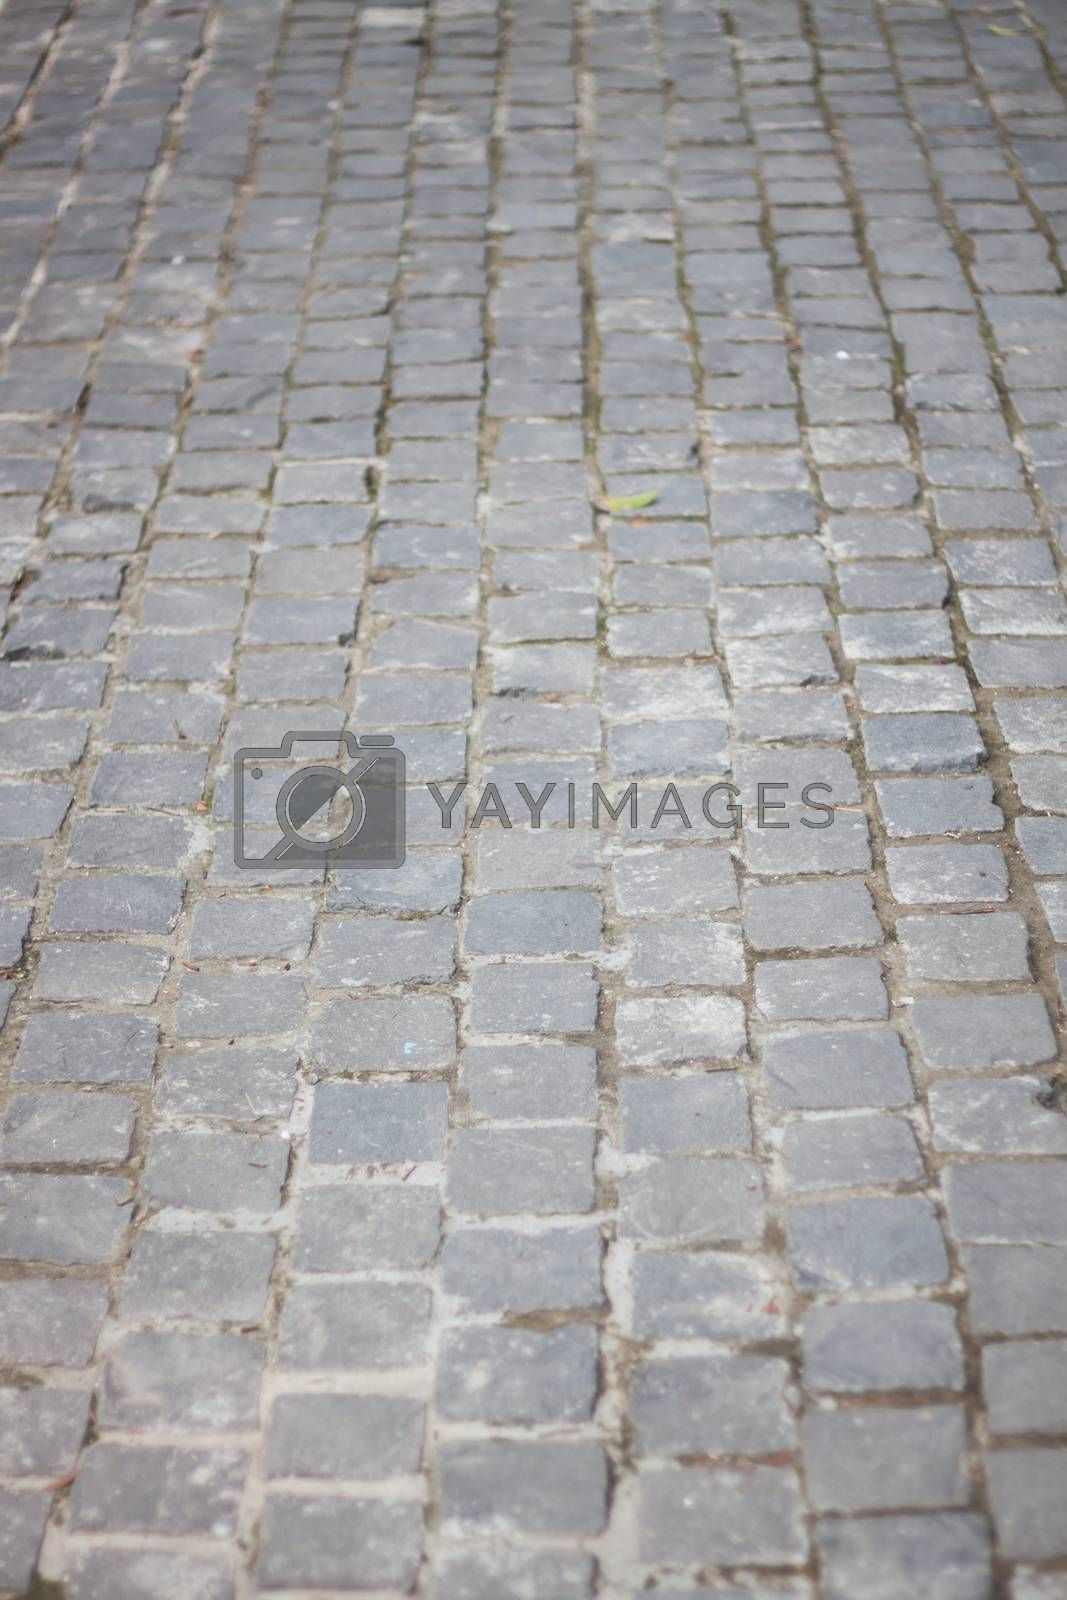 Concrete bricks path walk way, stock photo